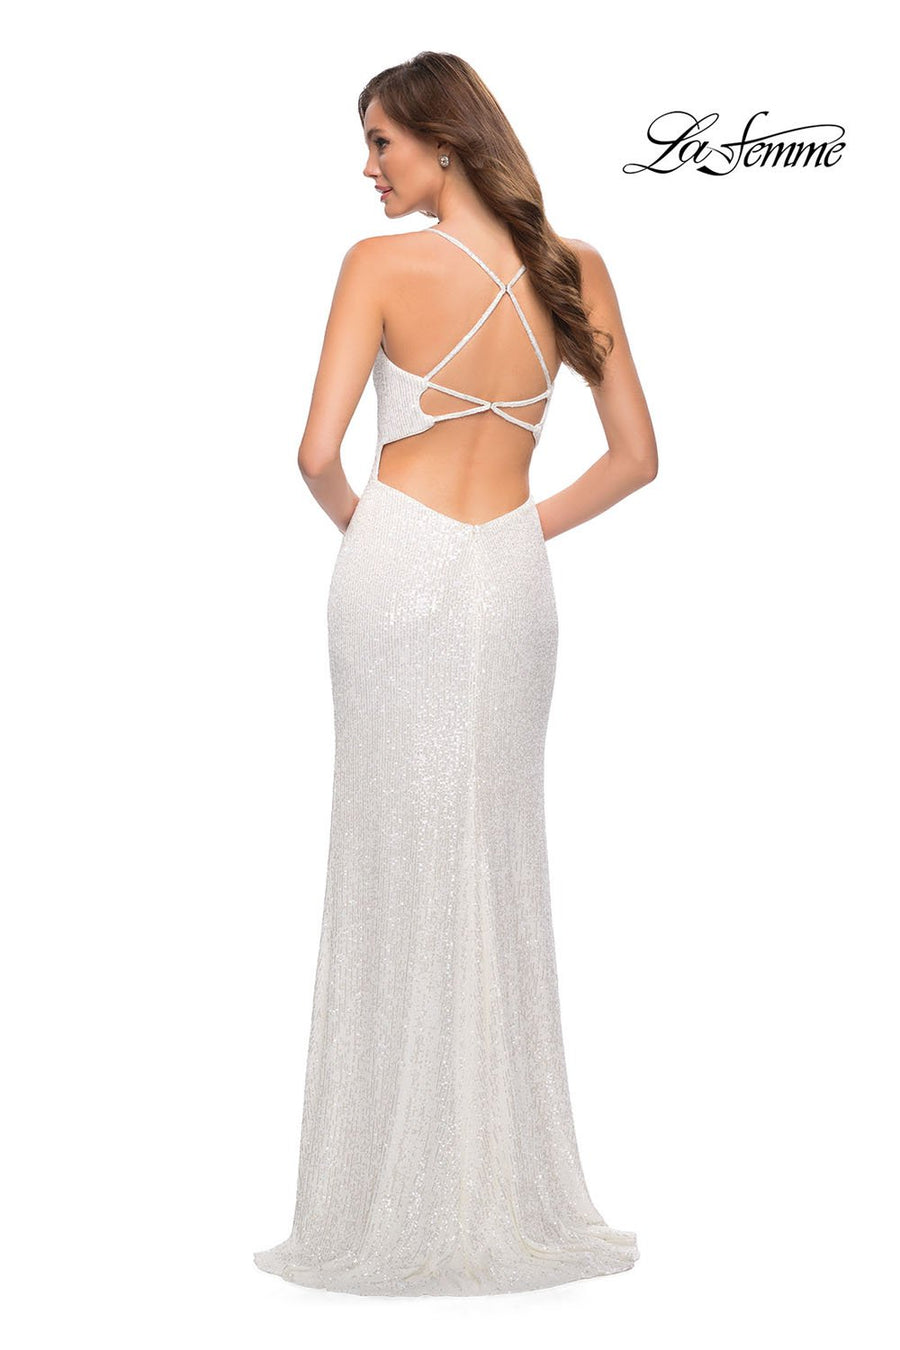 La Femme 29676 prom dress images.  La Femme 29676 is available in these colors: Cloud Blue, White.